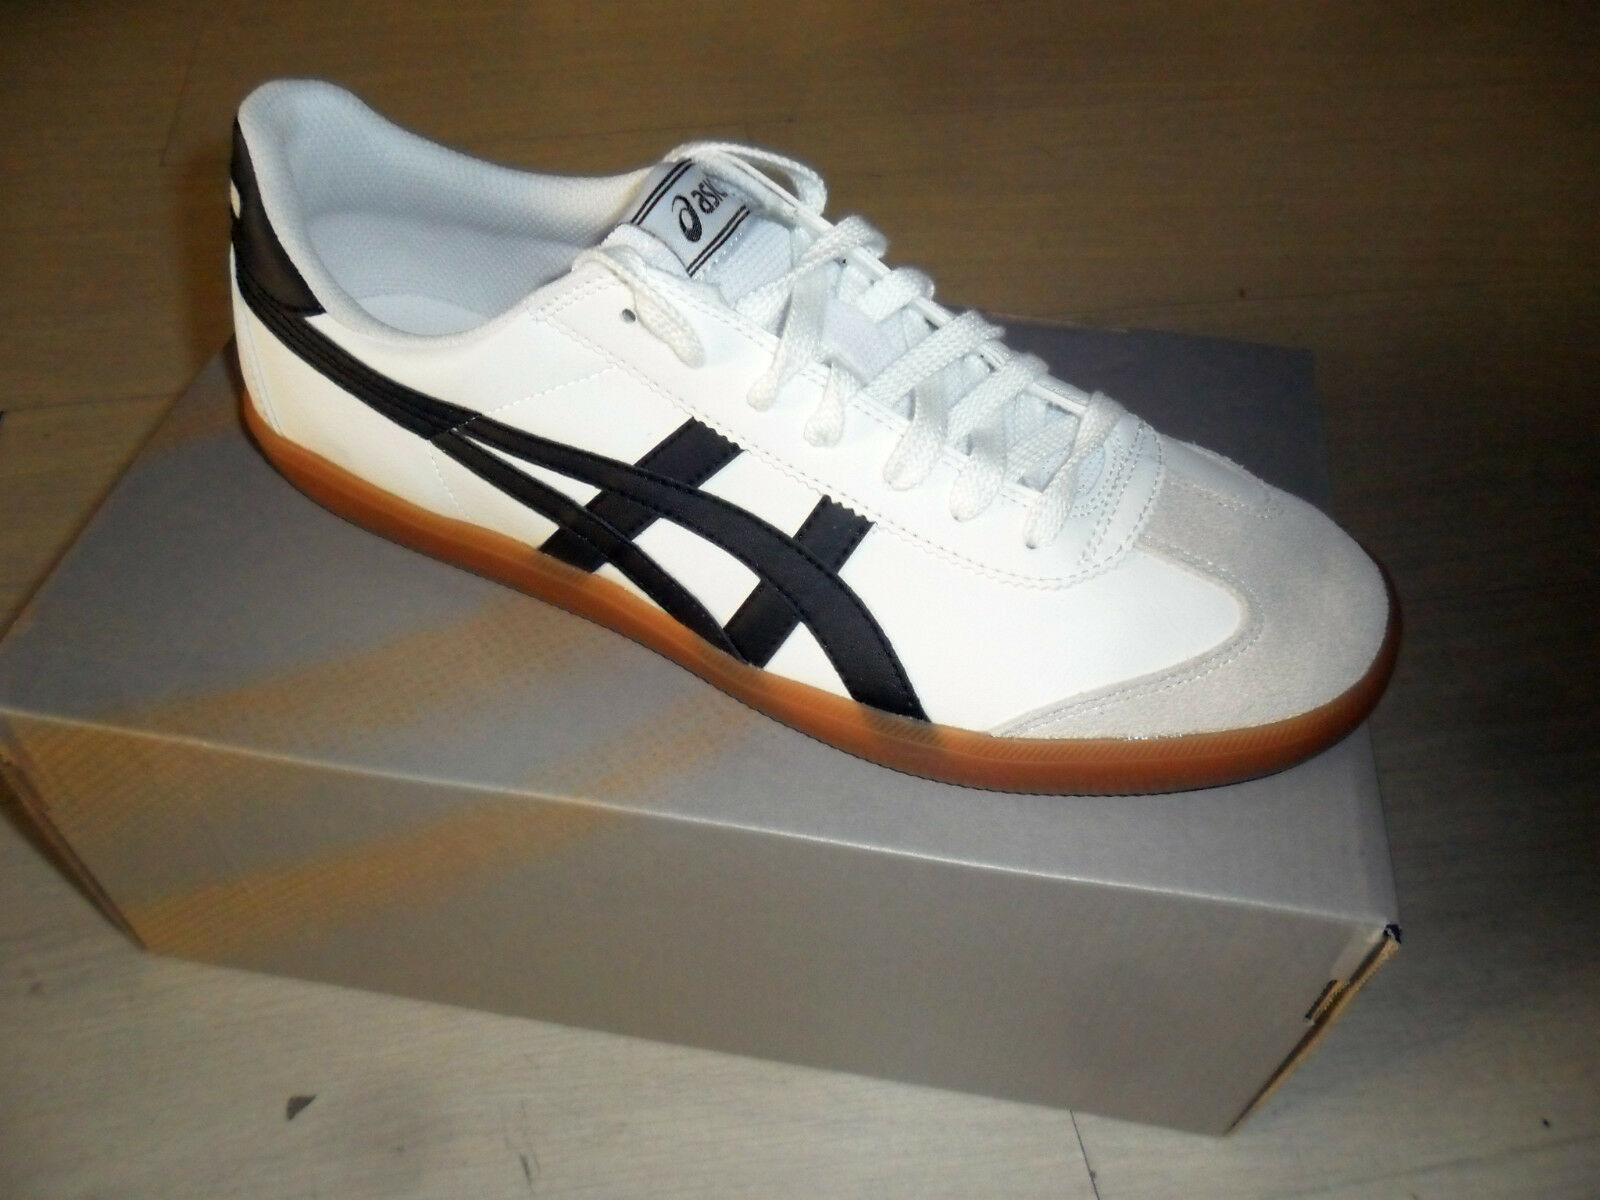 NR 40 ASICS AARON ONITSUKA SHOES MODE SHOES GYM H206Y-0190 WHITE